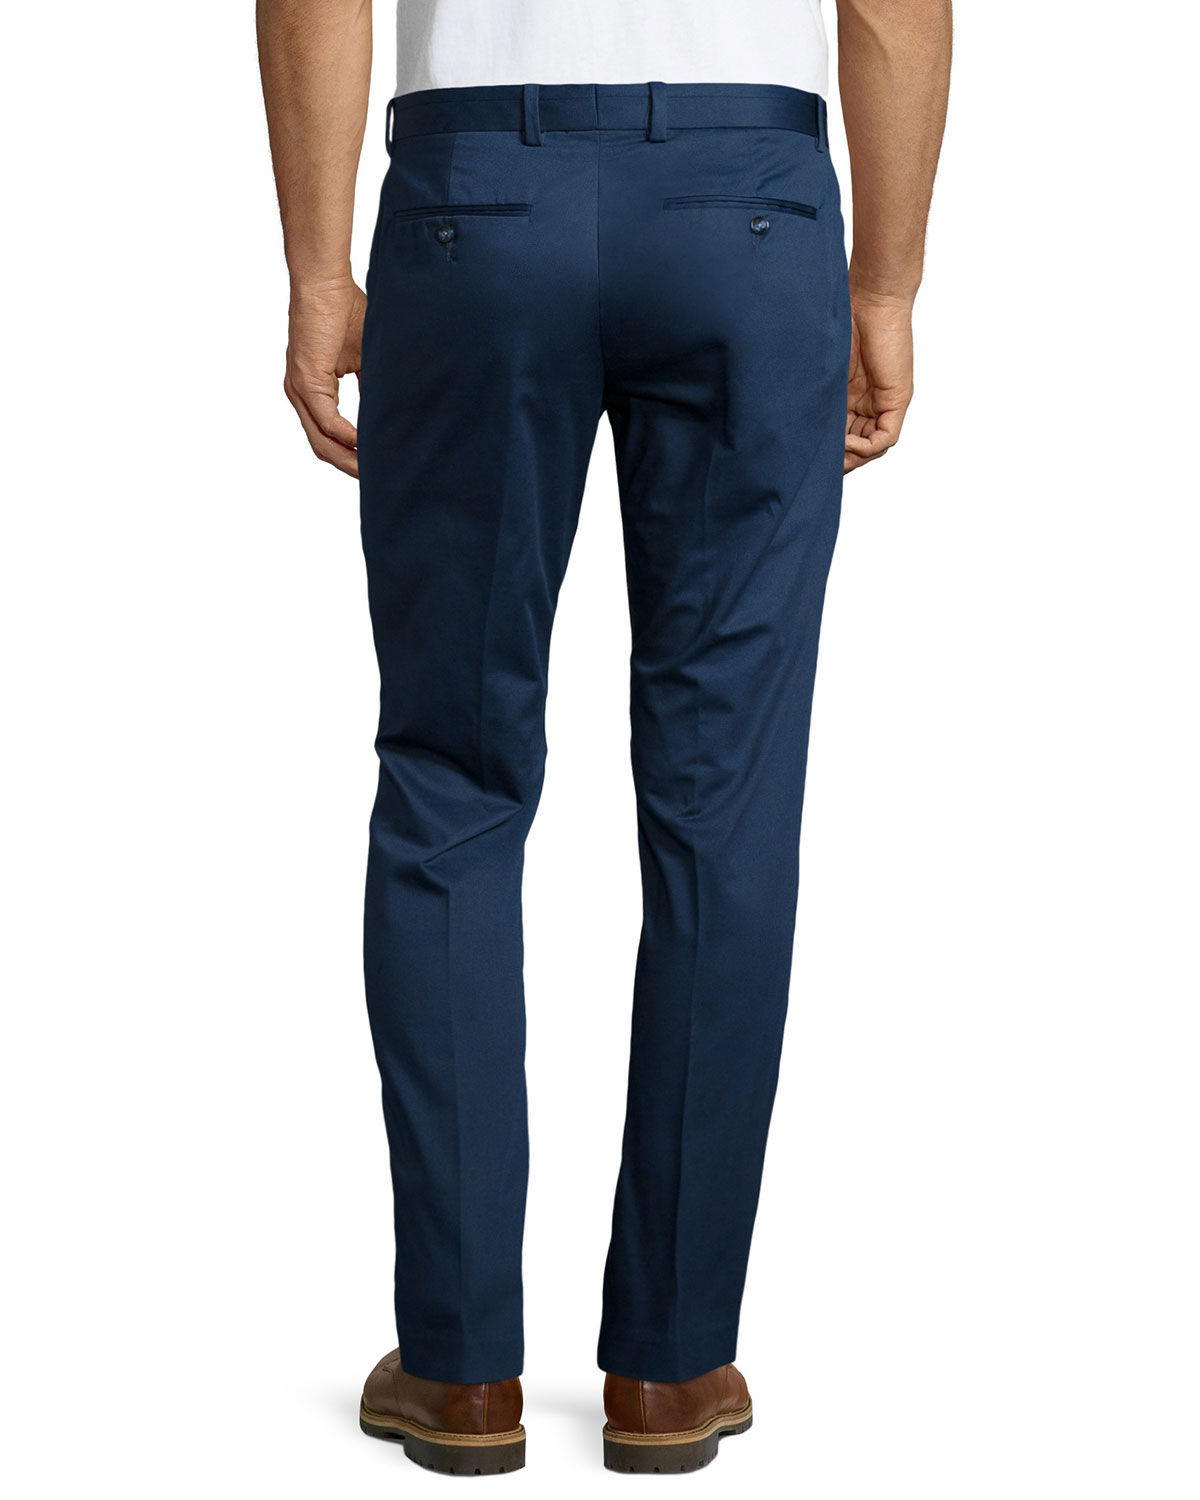 Tuxedo pants are available in an assortment of styles, colors, fabrics, and designers. Modern fit, classic fit and slim fit are all available for same day shipping. To learn more about how to buy our tuxedo pants, visit our site today!